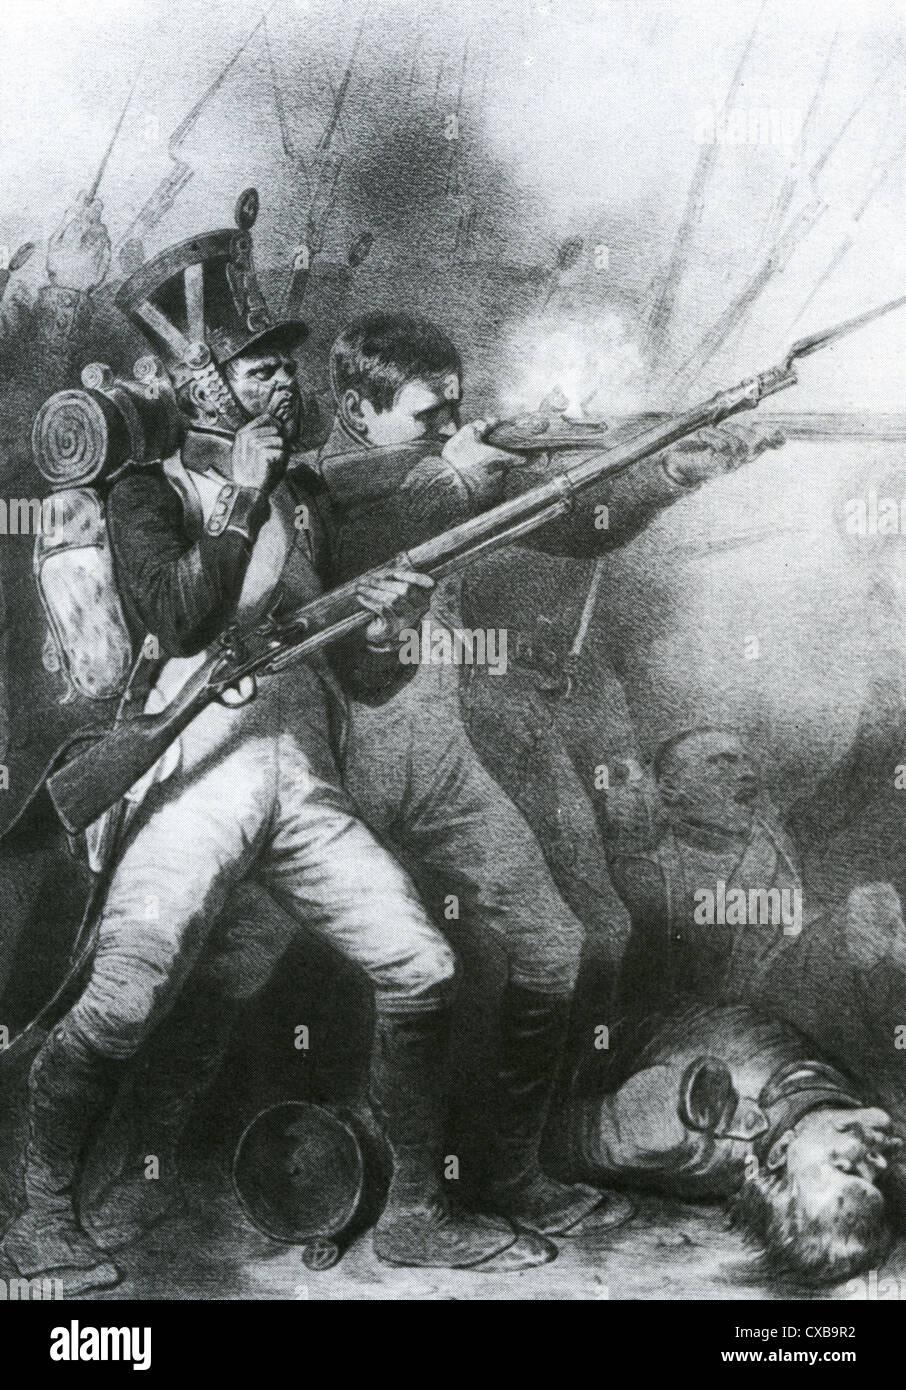 NAPOLEONIC WARS French infantry in Saxony in 1813 with nearest soldier biting off the end of a cartridge to load - Stock Image